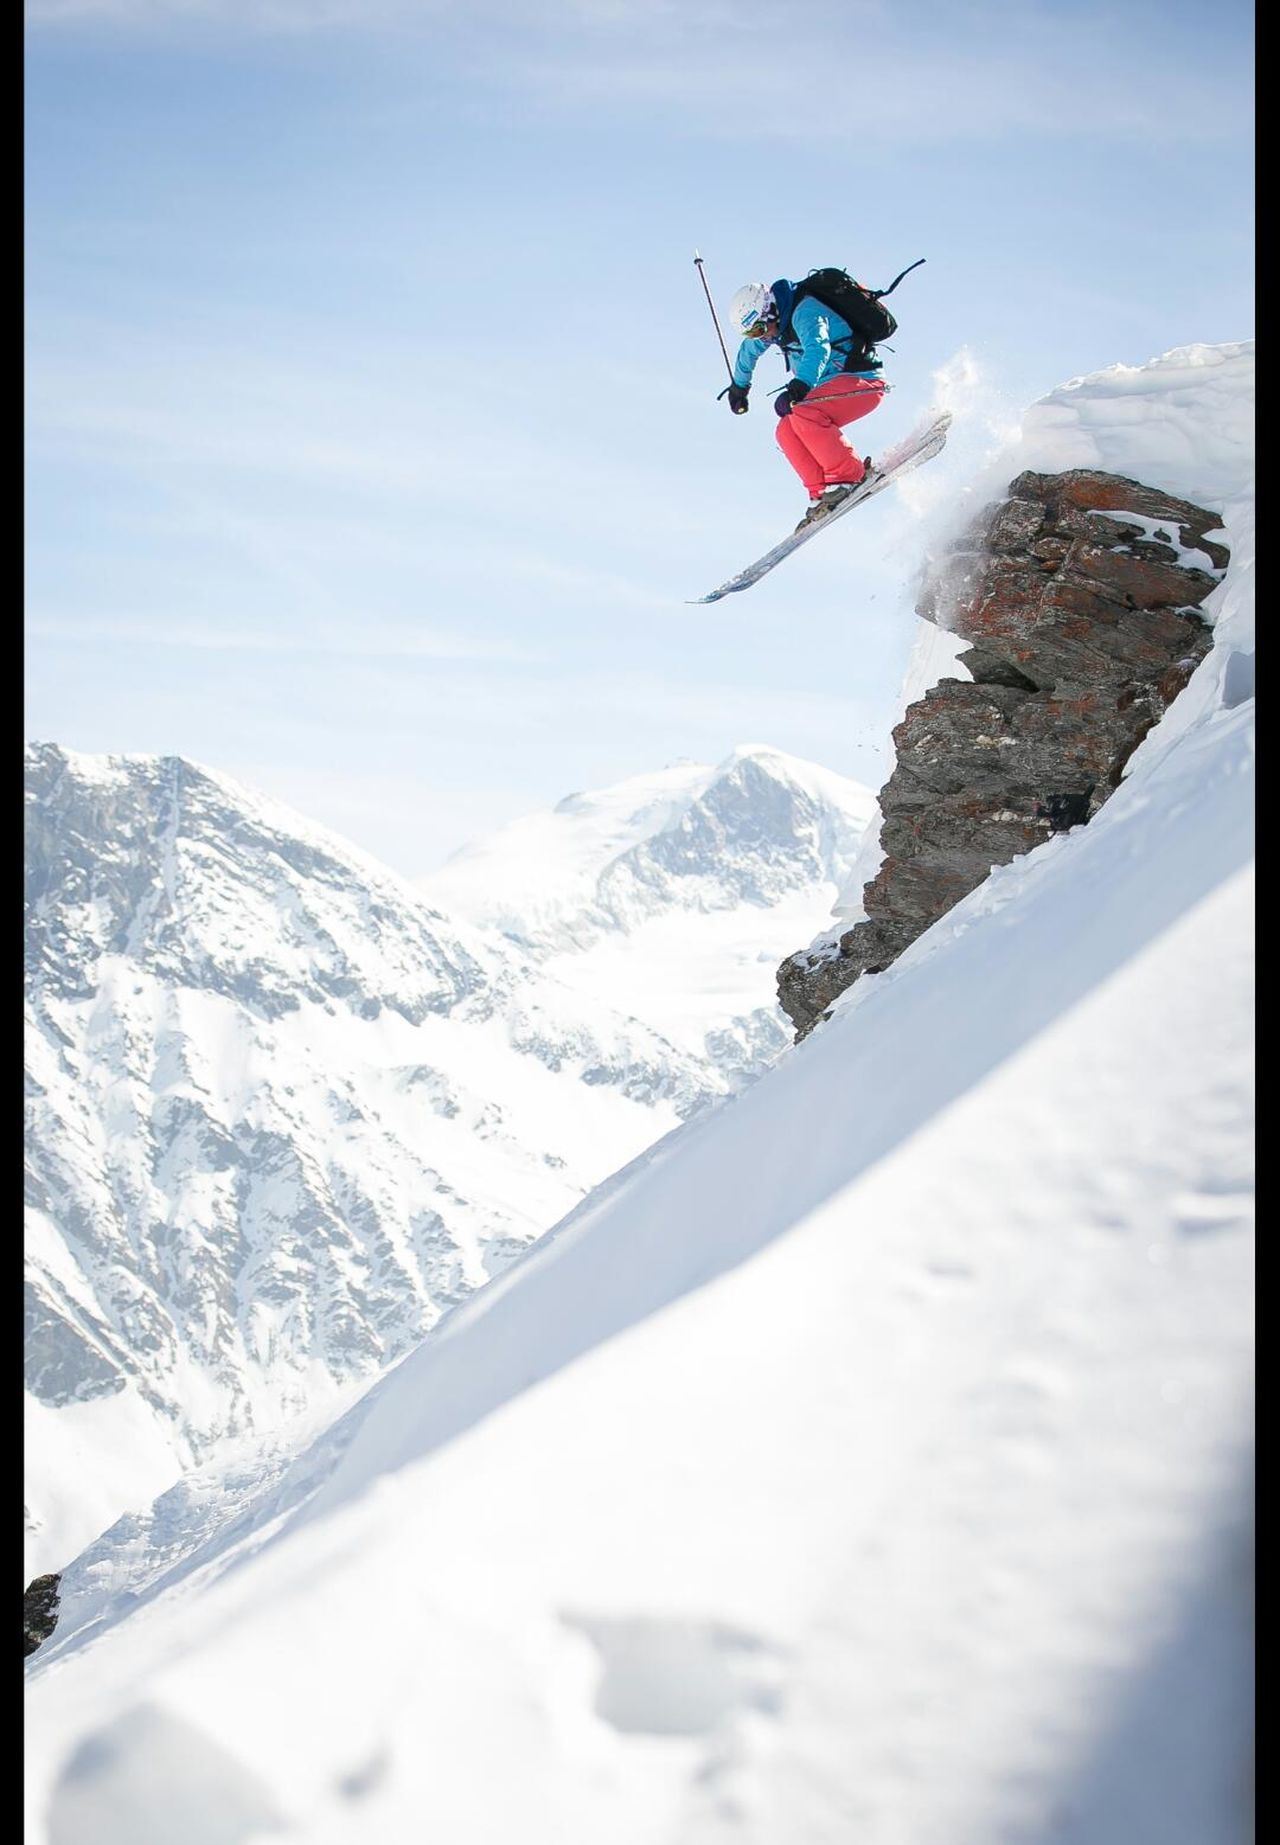 go big or go home Winter Snow Mountain Cliff Drop Action Sports Nature Backcountryskiing Powderdays